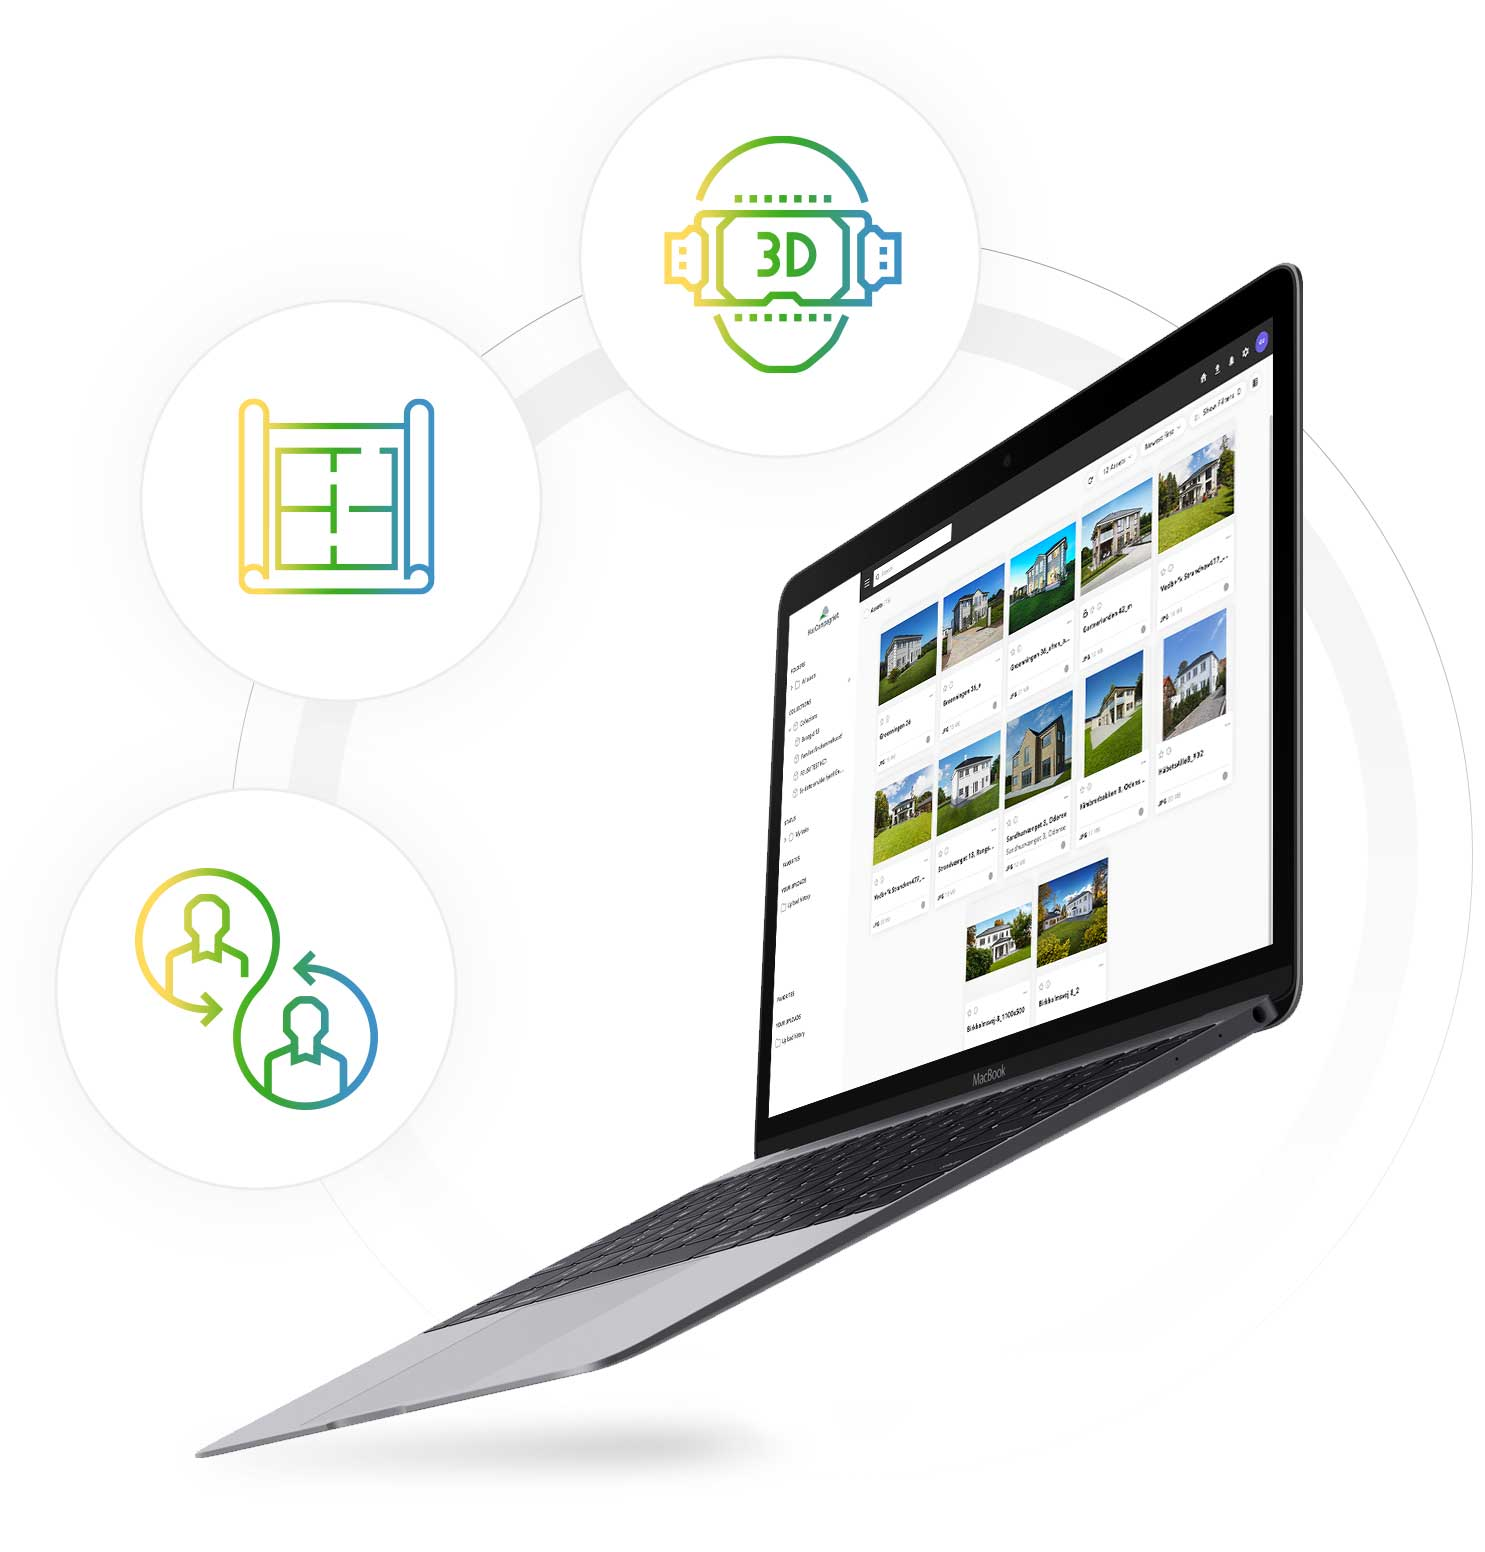 Deliver better customer experiences and increase property sales using a DAM system - As a home builder, marketing can yield great results when you utilize relevant digital content (virtual tours, videos, photos, 3D models) to provide clients with better customer experiences.